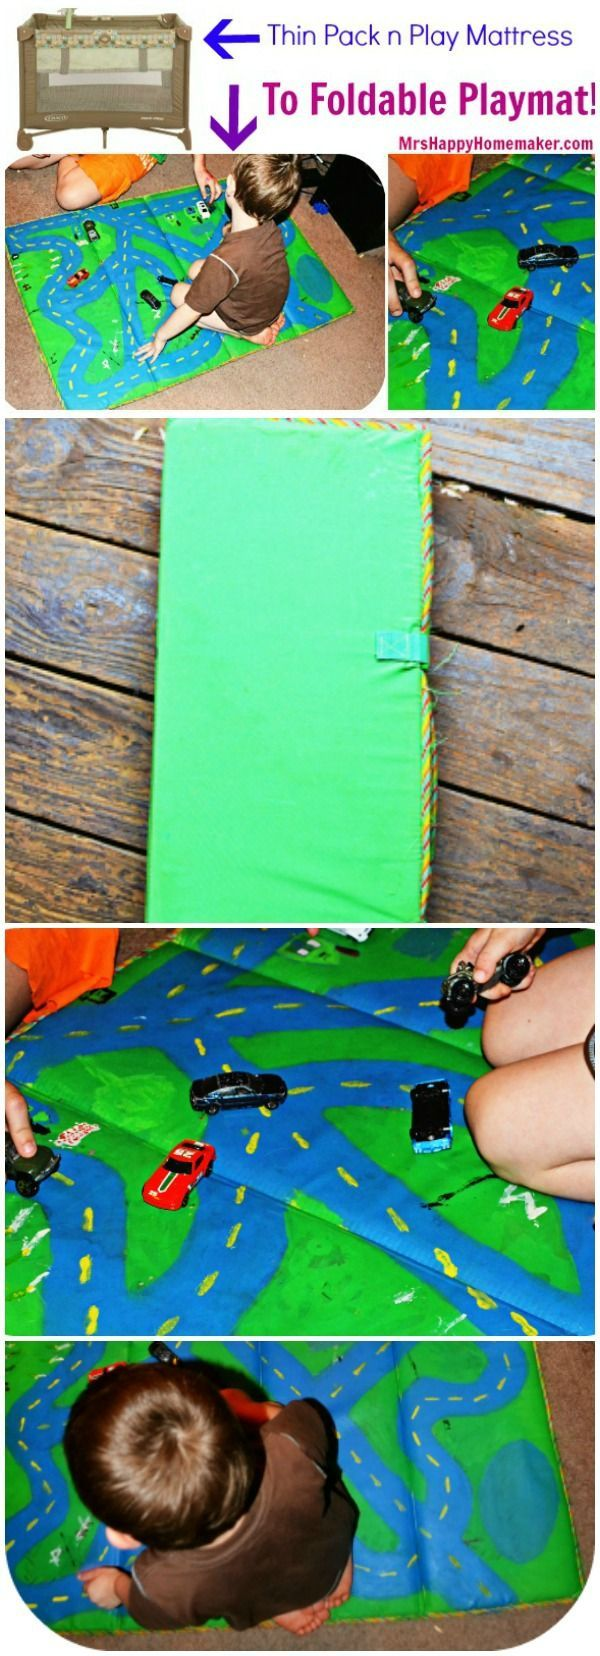 Recycle an old pack & play mattress into a foldable racetrack playmat for your kids! If you don't already have one, you can find old pack n plays at thrift stores & yard sales for super cheap. This is a GREAT idea and so easy too!